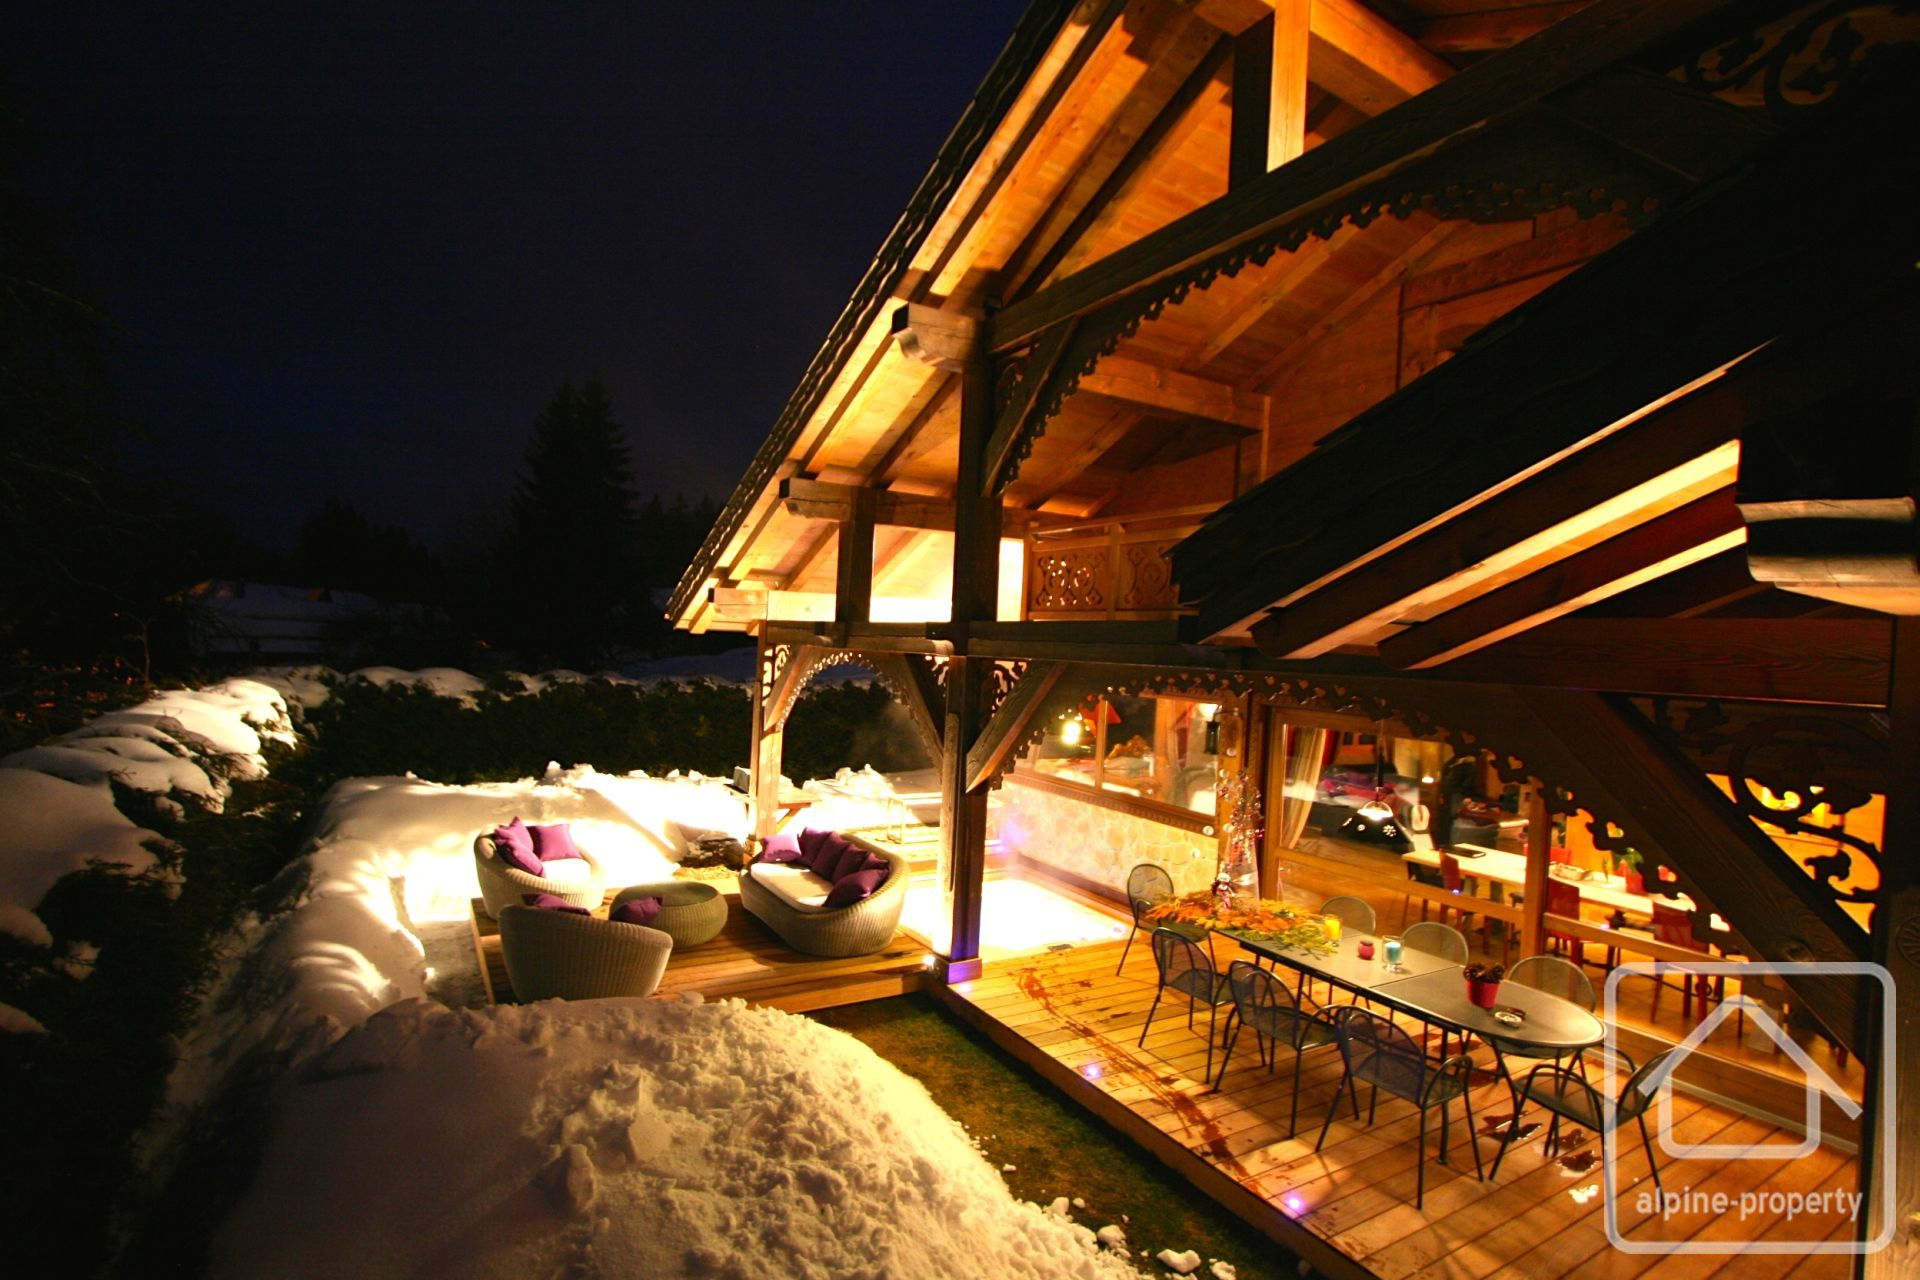 Chalet du lay alpine property estate agent in the french alps - Garage du ski les carroz ...